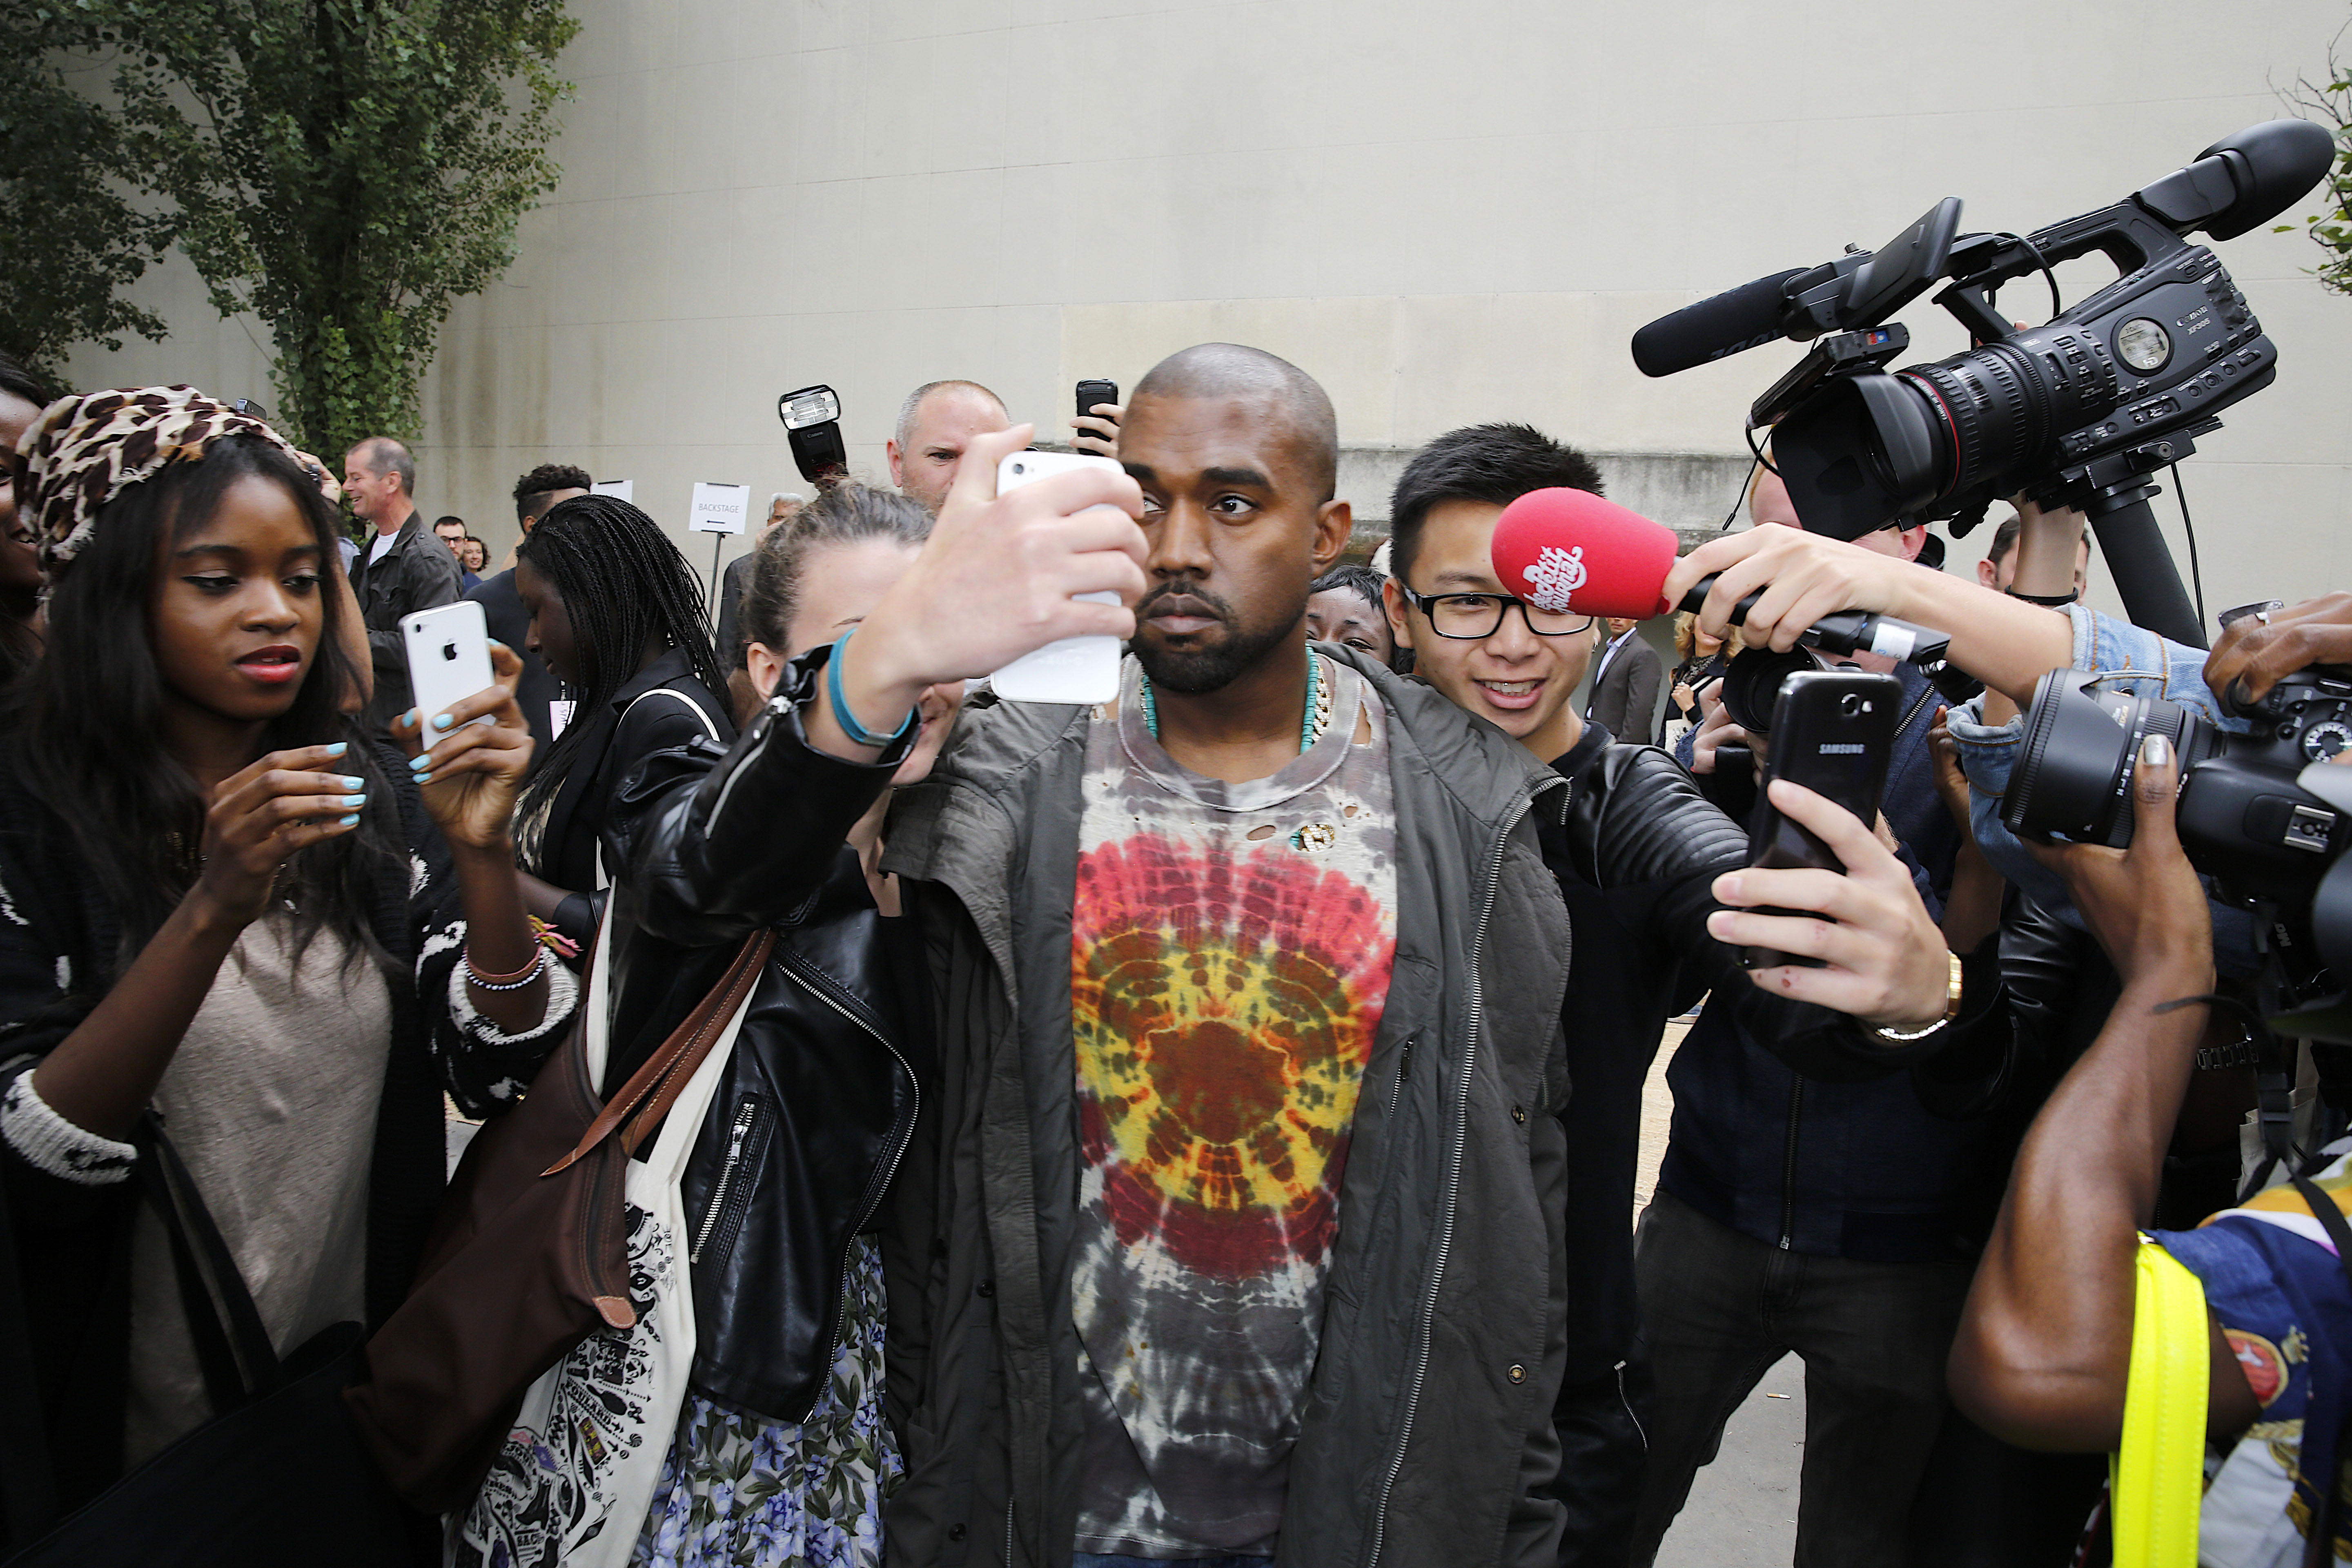 Kanye West gets swarmed in Paris (Splash News)